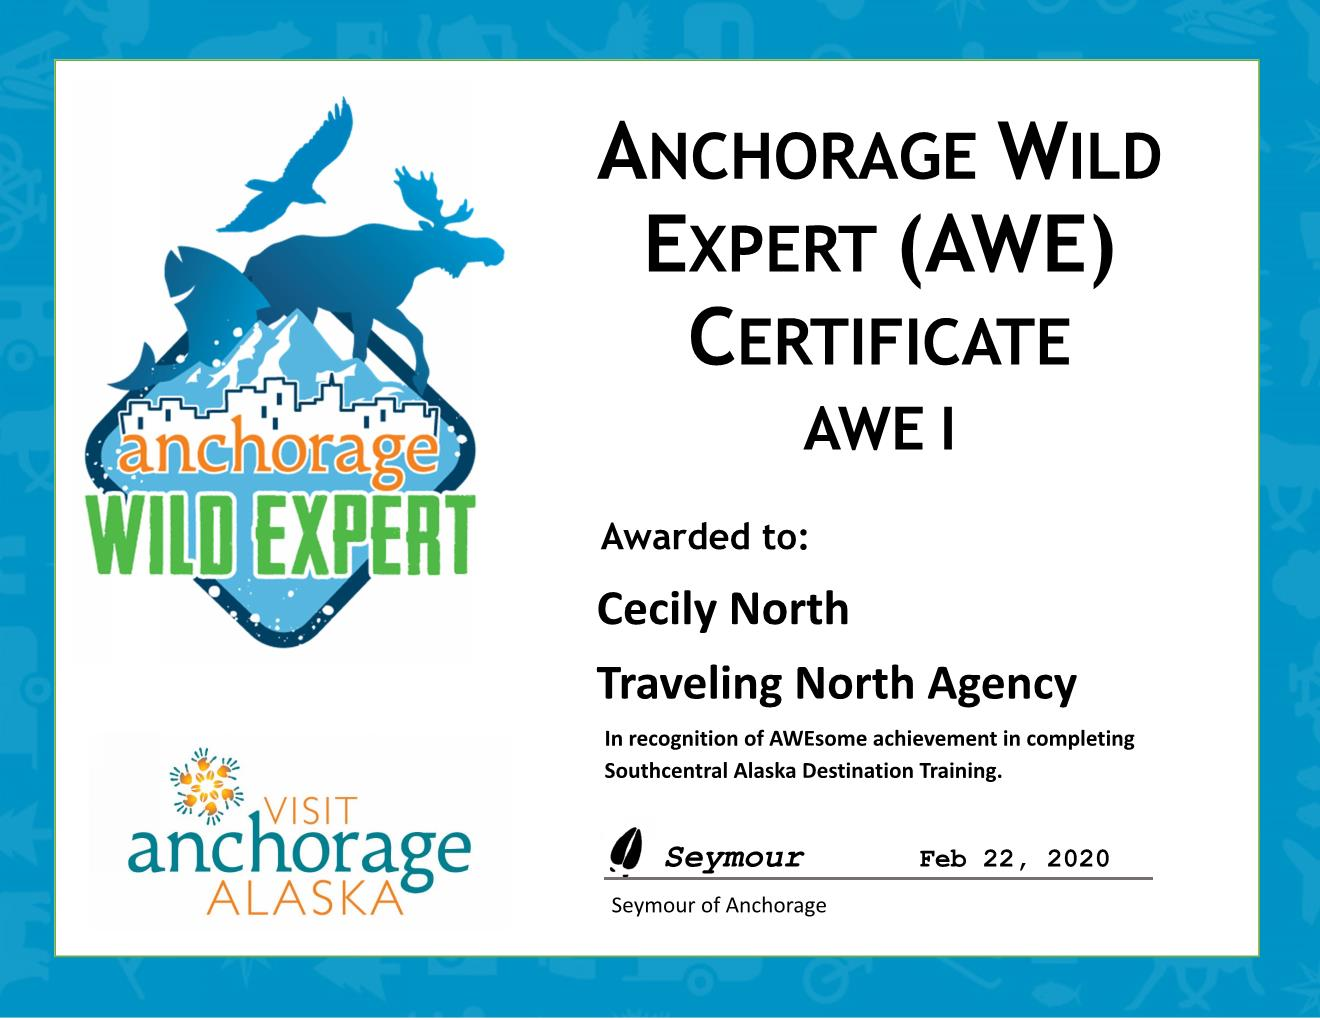 Anchorage Wild Expert